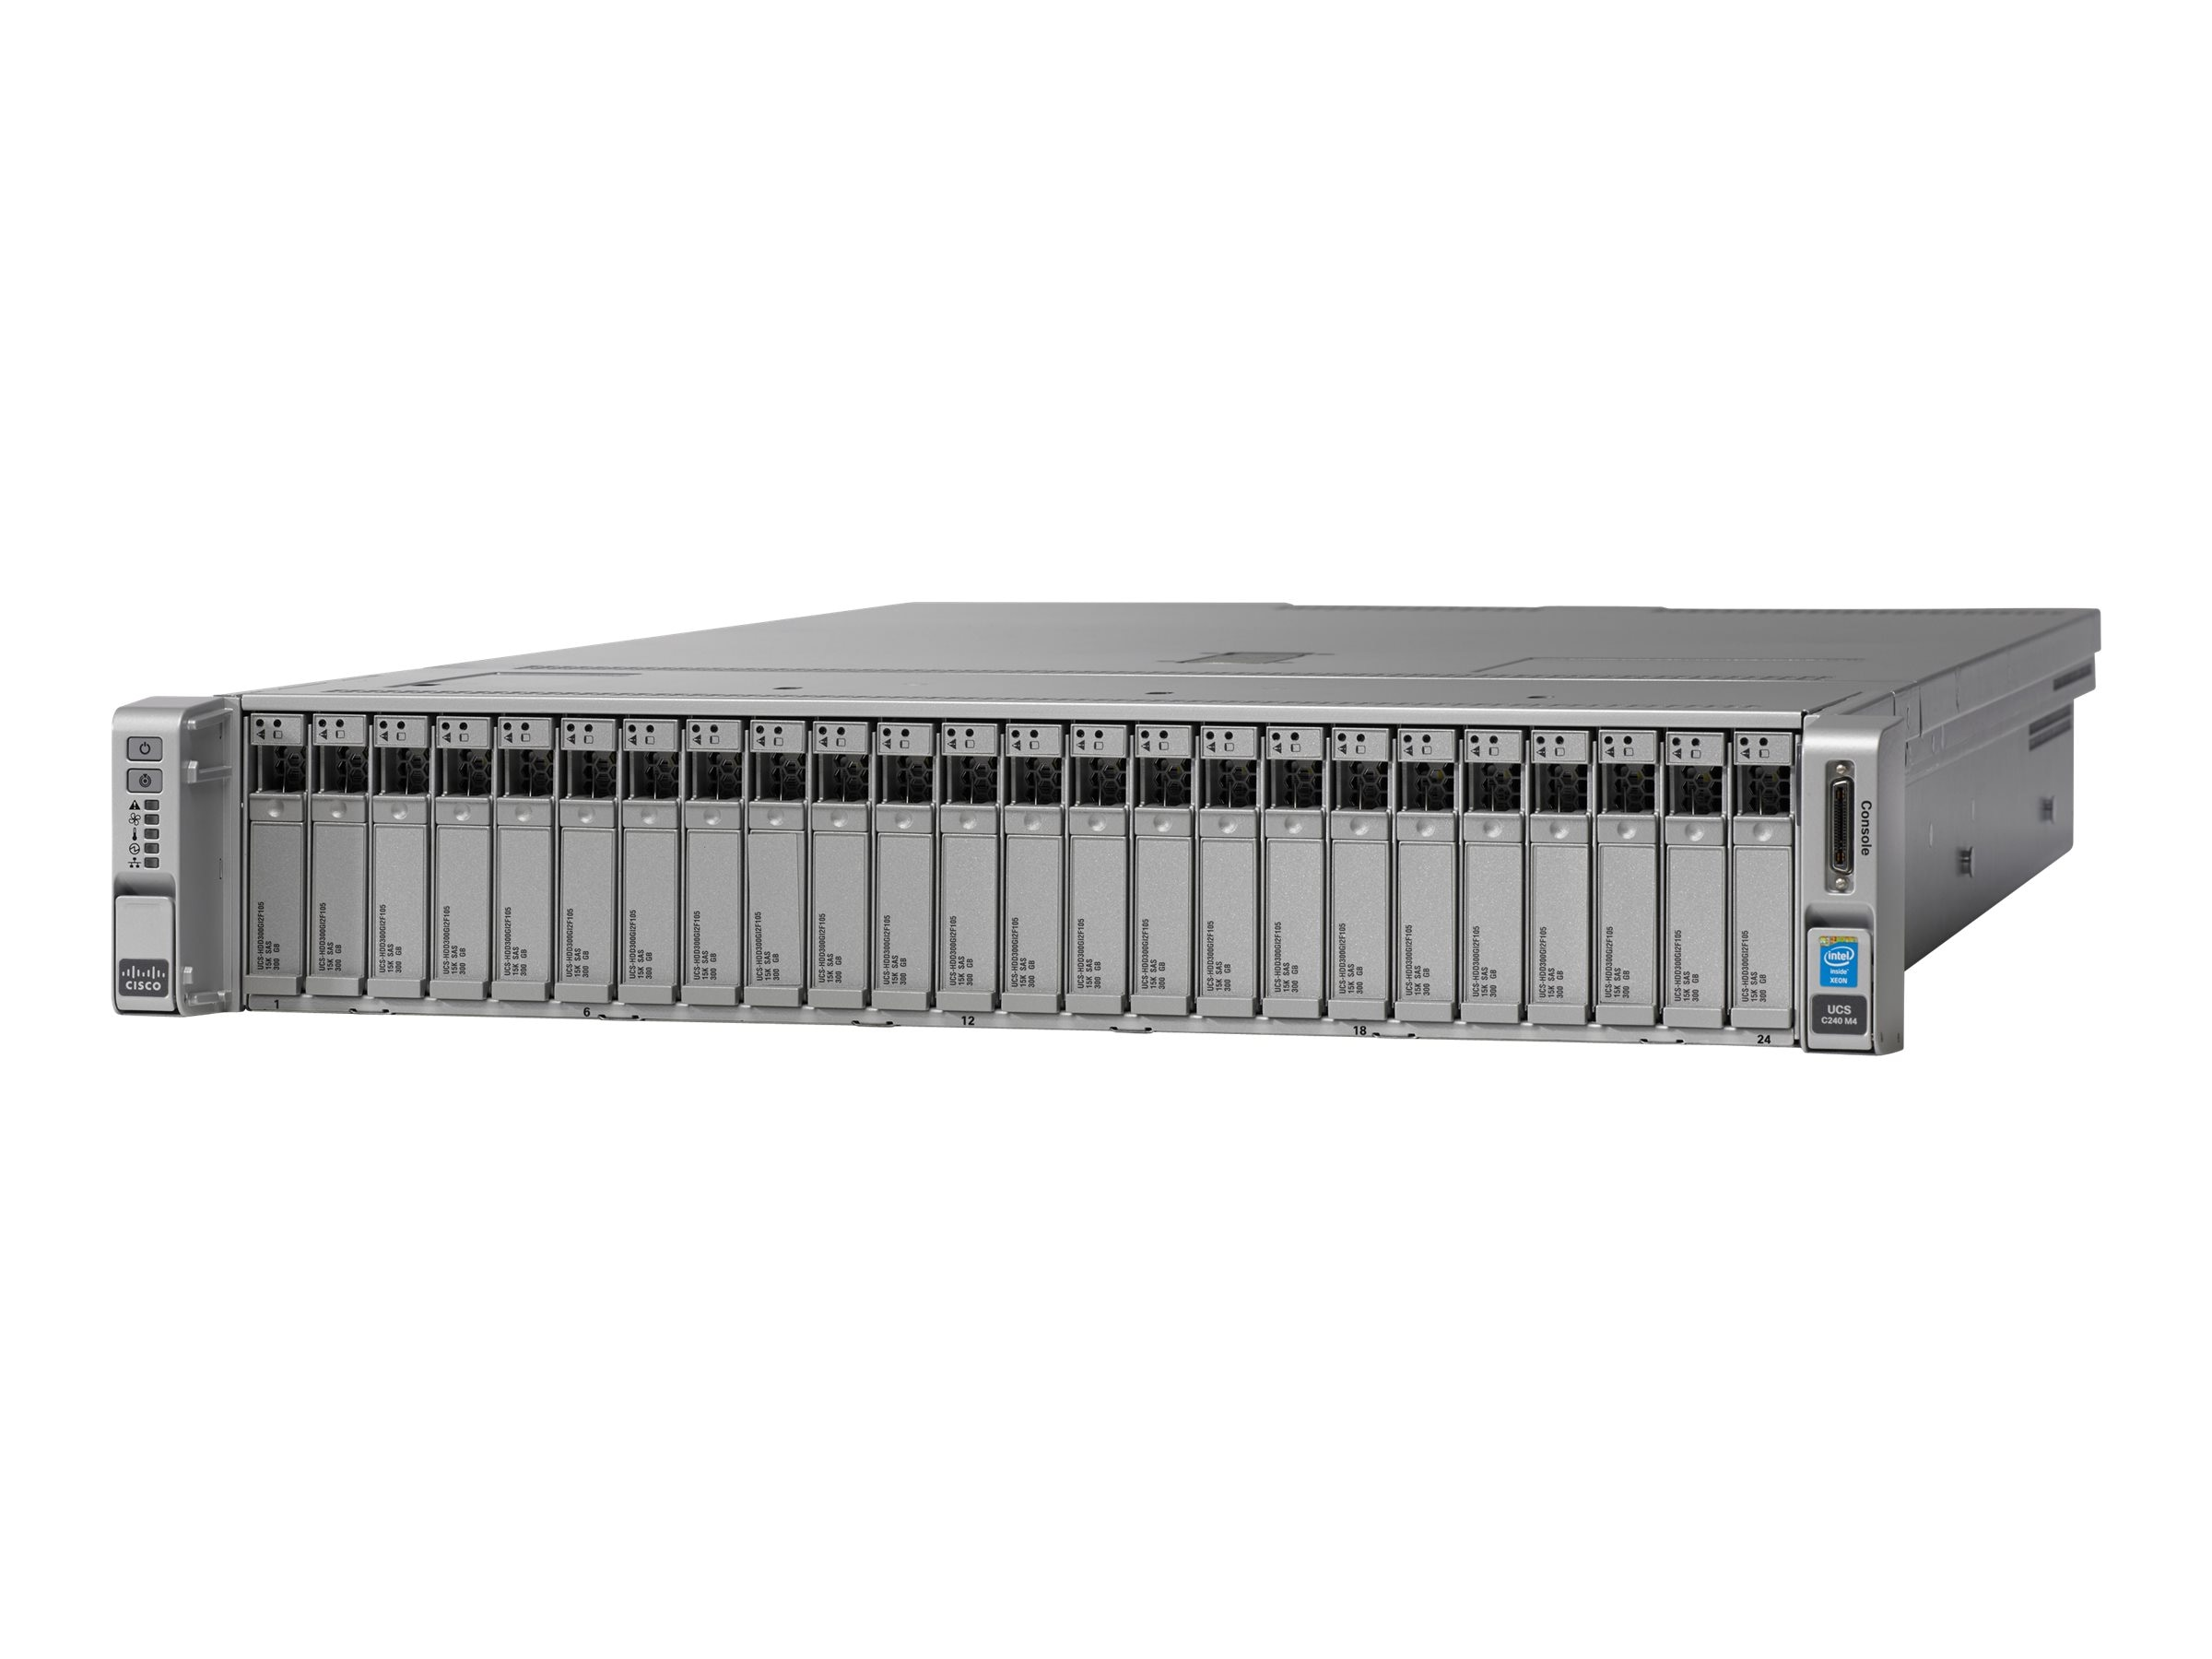 Cisco UCS-SPR-C240M4-BB1 Image 1